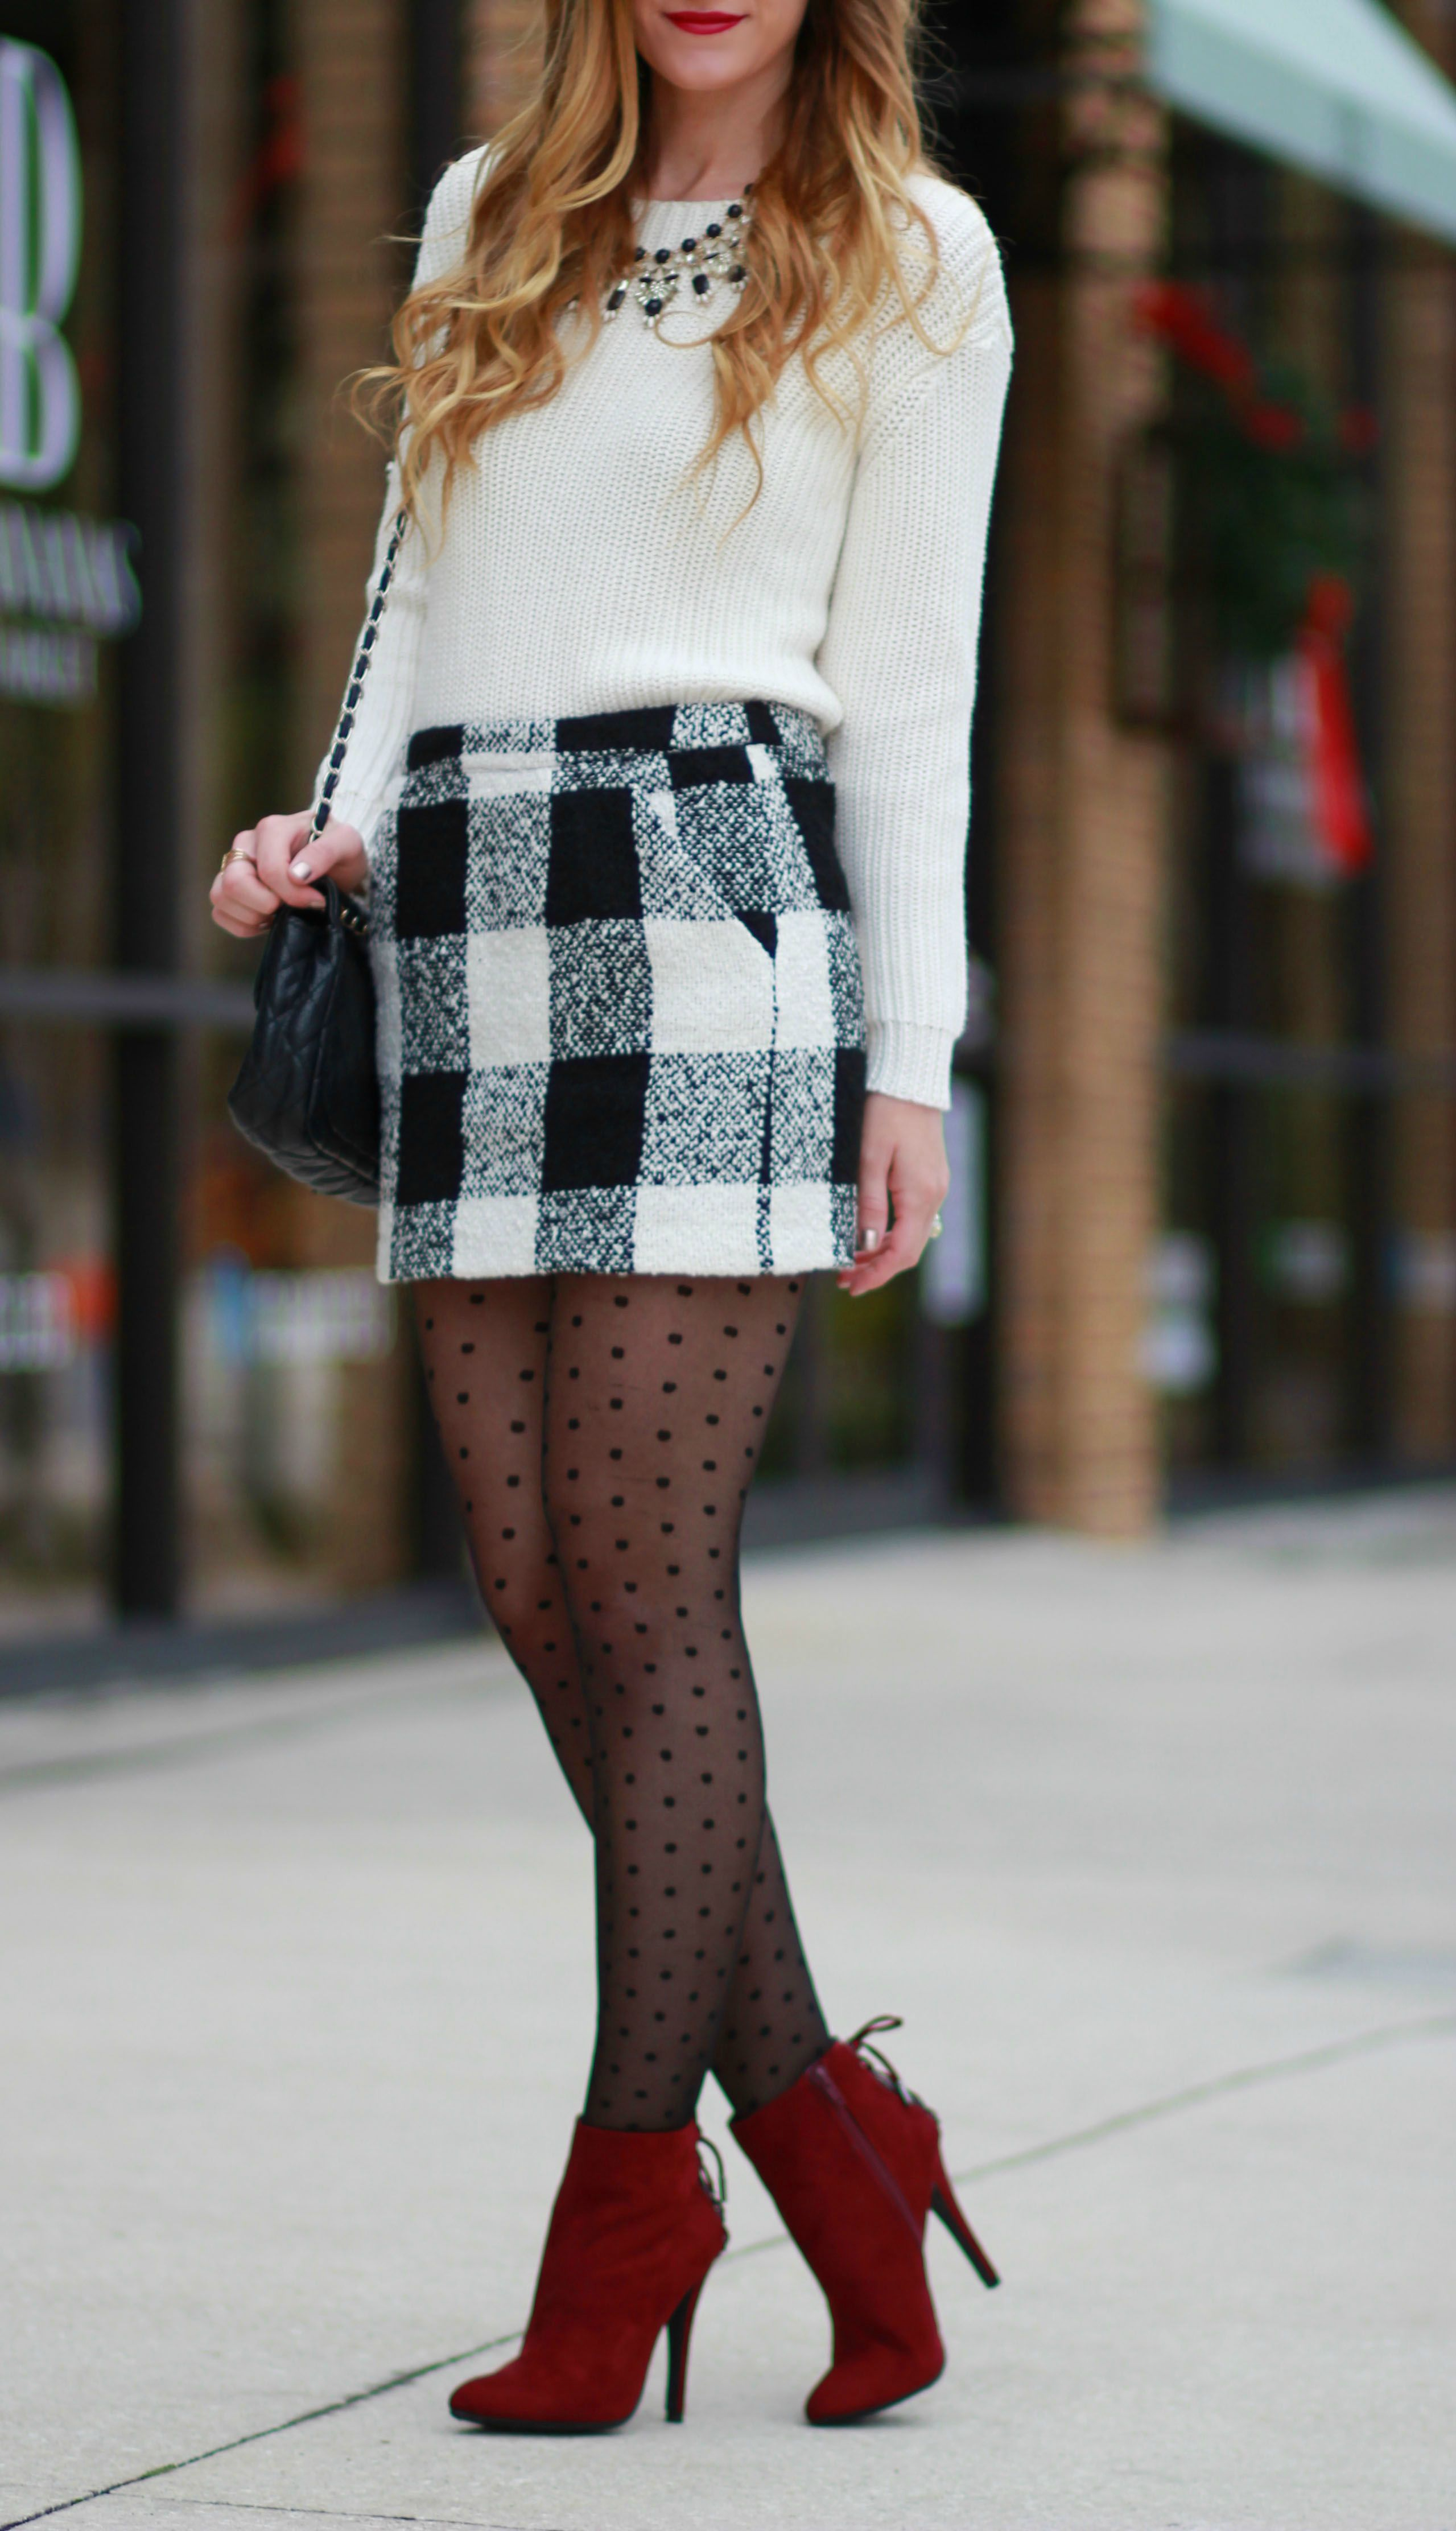 florida, orlando fashion blogger style forever 21 buffalo check, h&m sweater, black and white statement necklace, polka dotted tights, and sugar pair booties for a holiday outfit